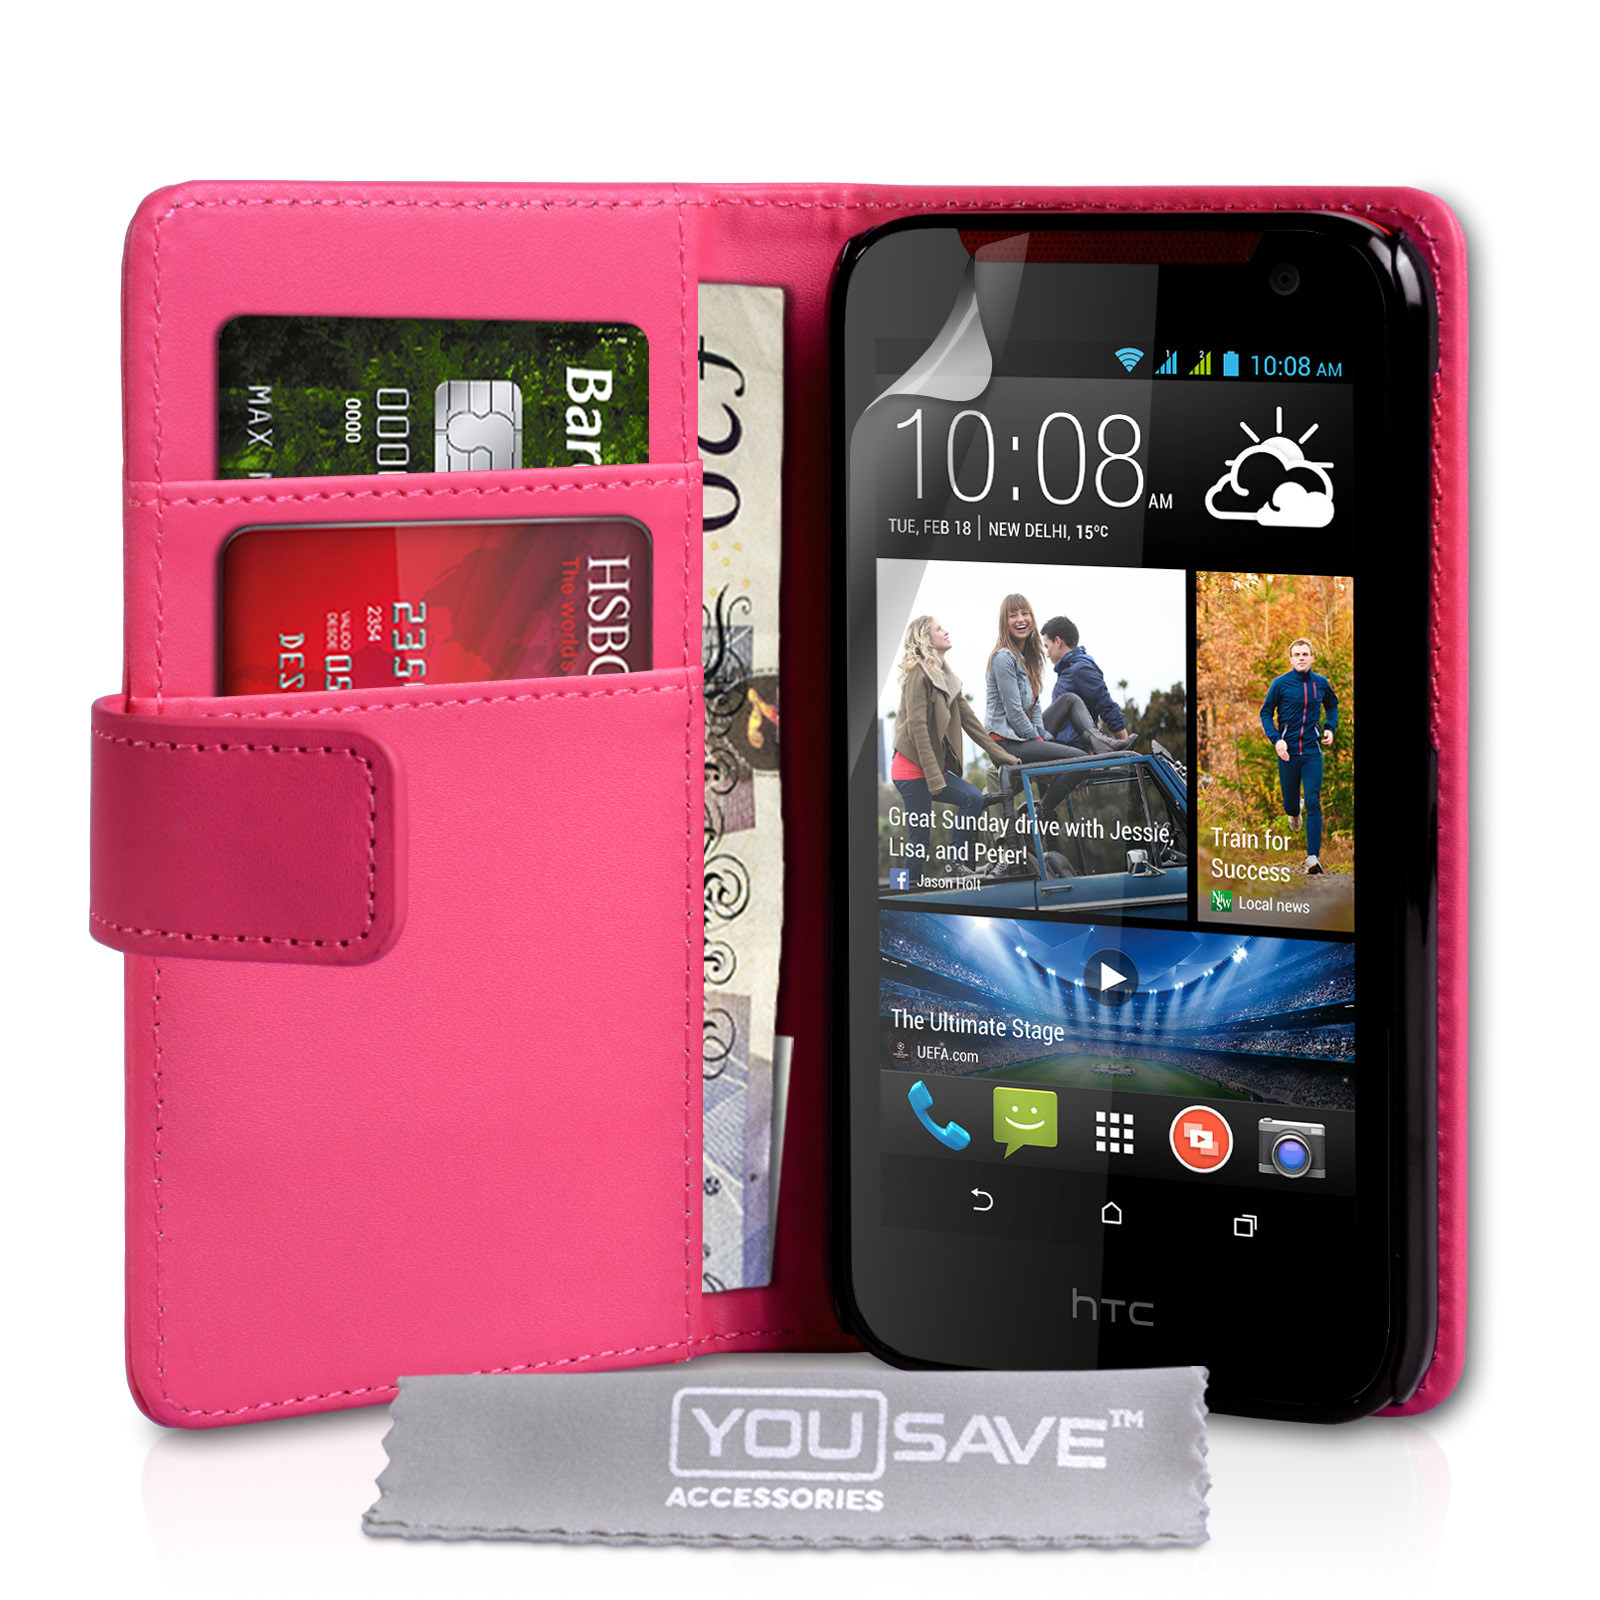 YouSave HTC Desire 310 Leather-Effect Wallet Case - Hot Pink